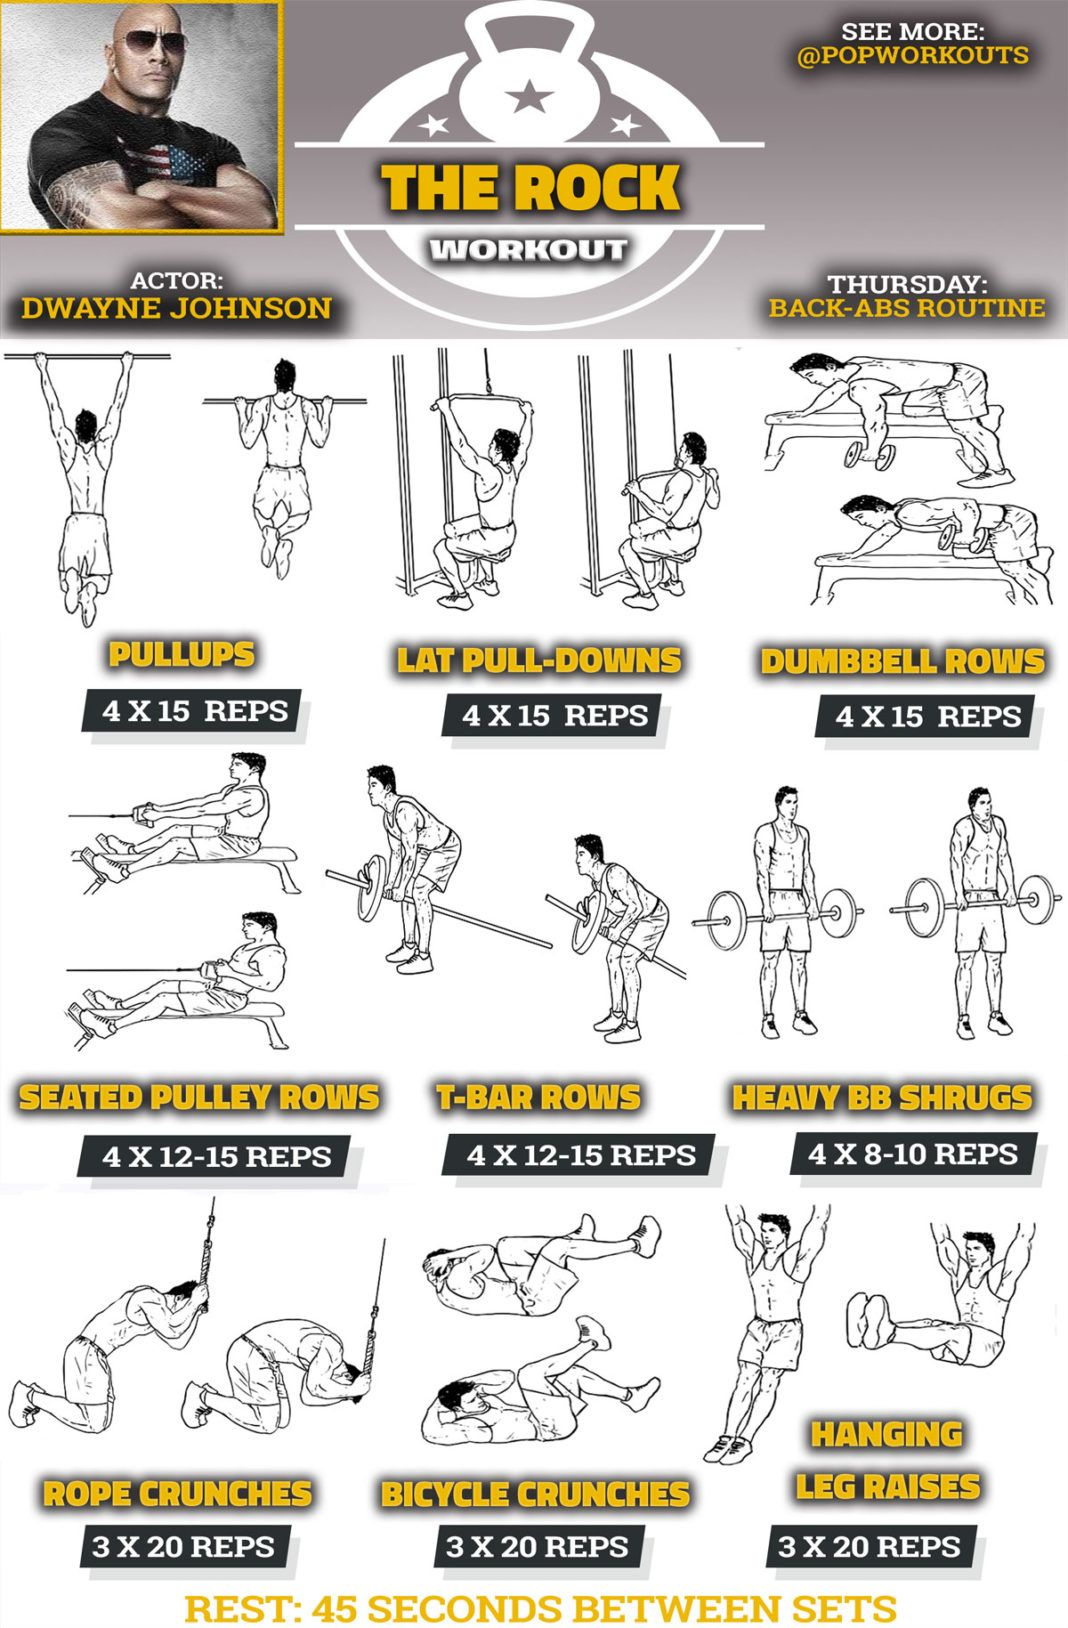 Gym Workout Chart For Chest For Men The Rocks Back Workout With Abs Workout Routines Pop